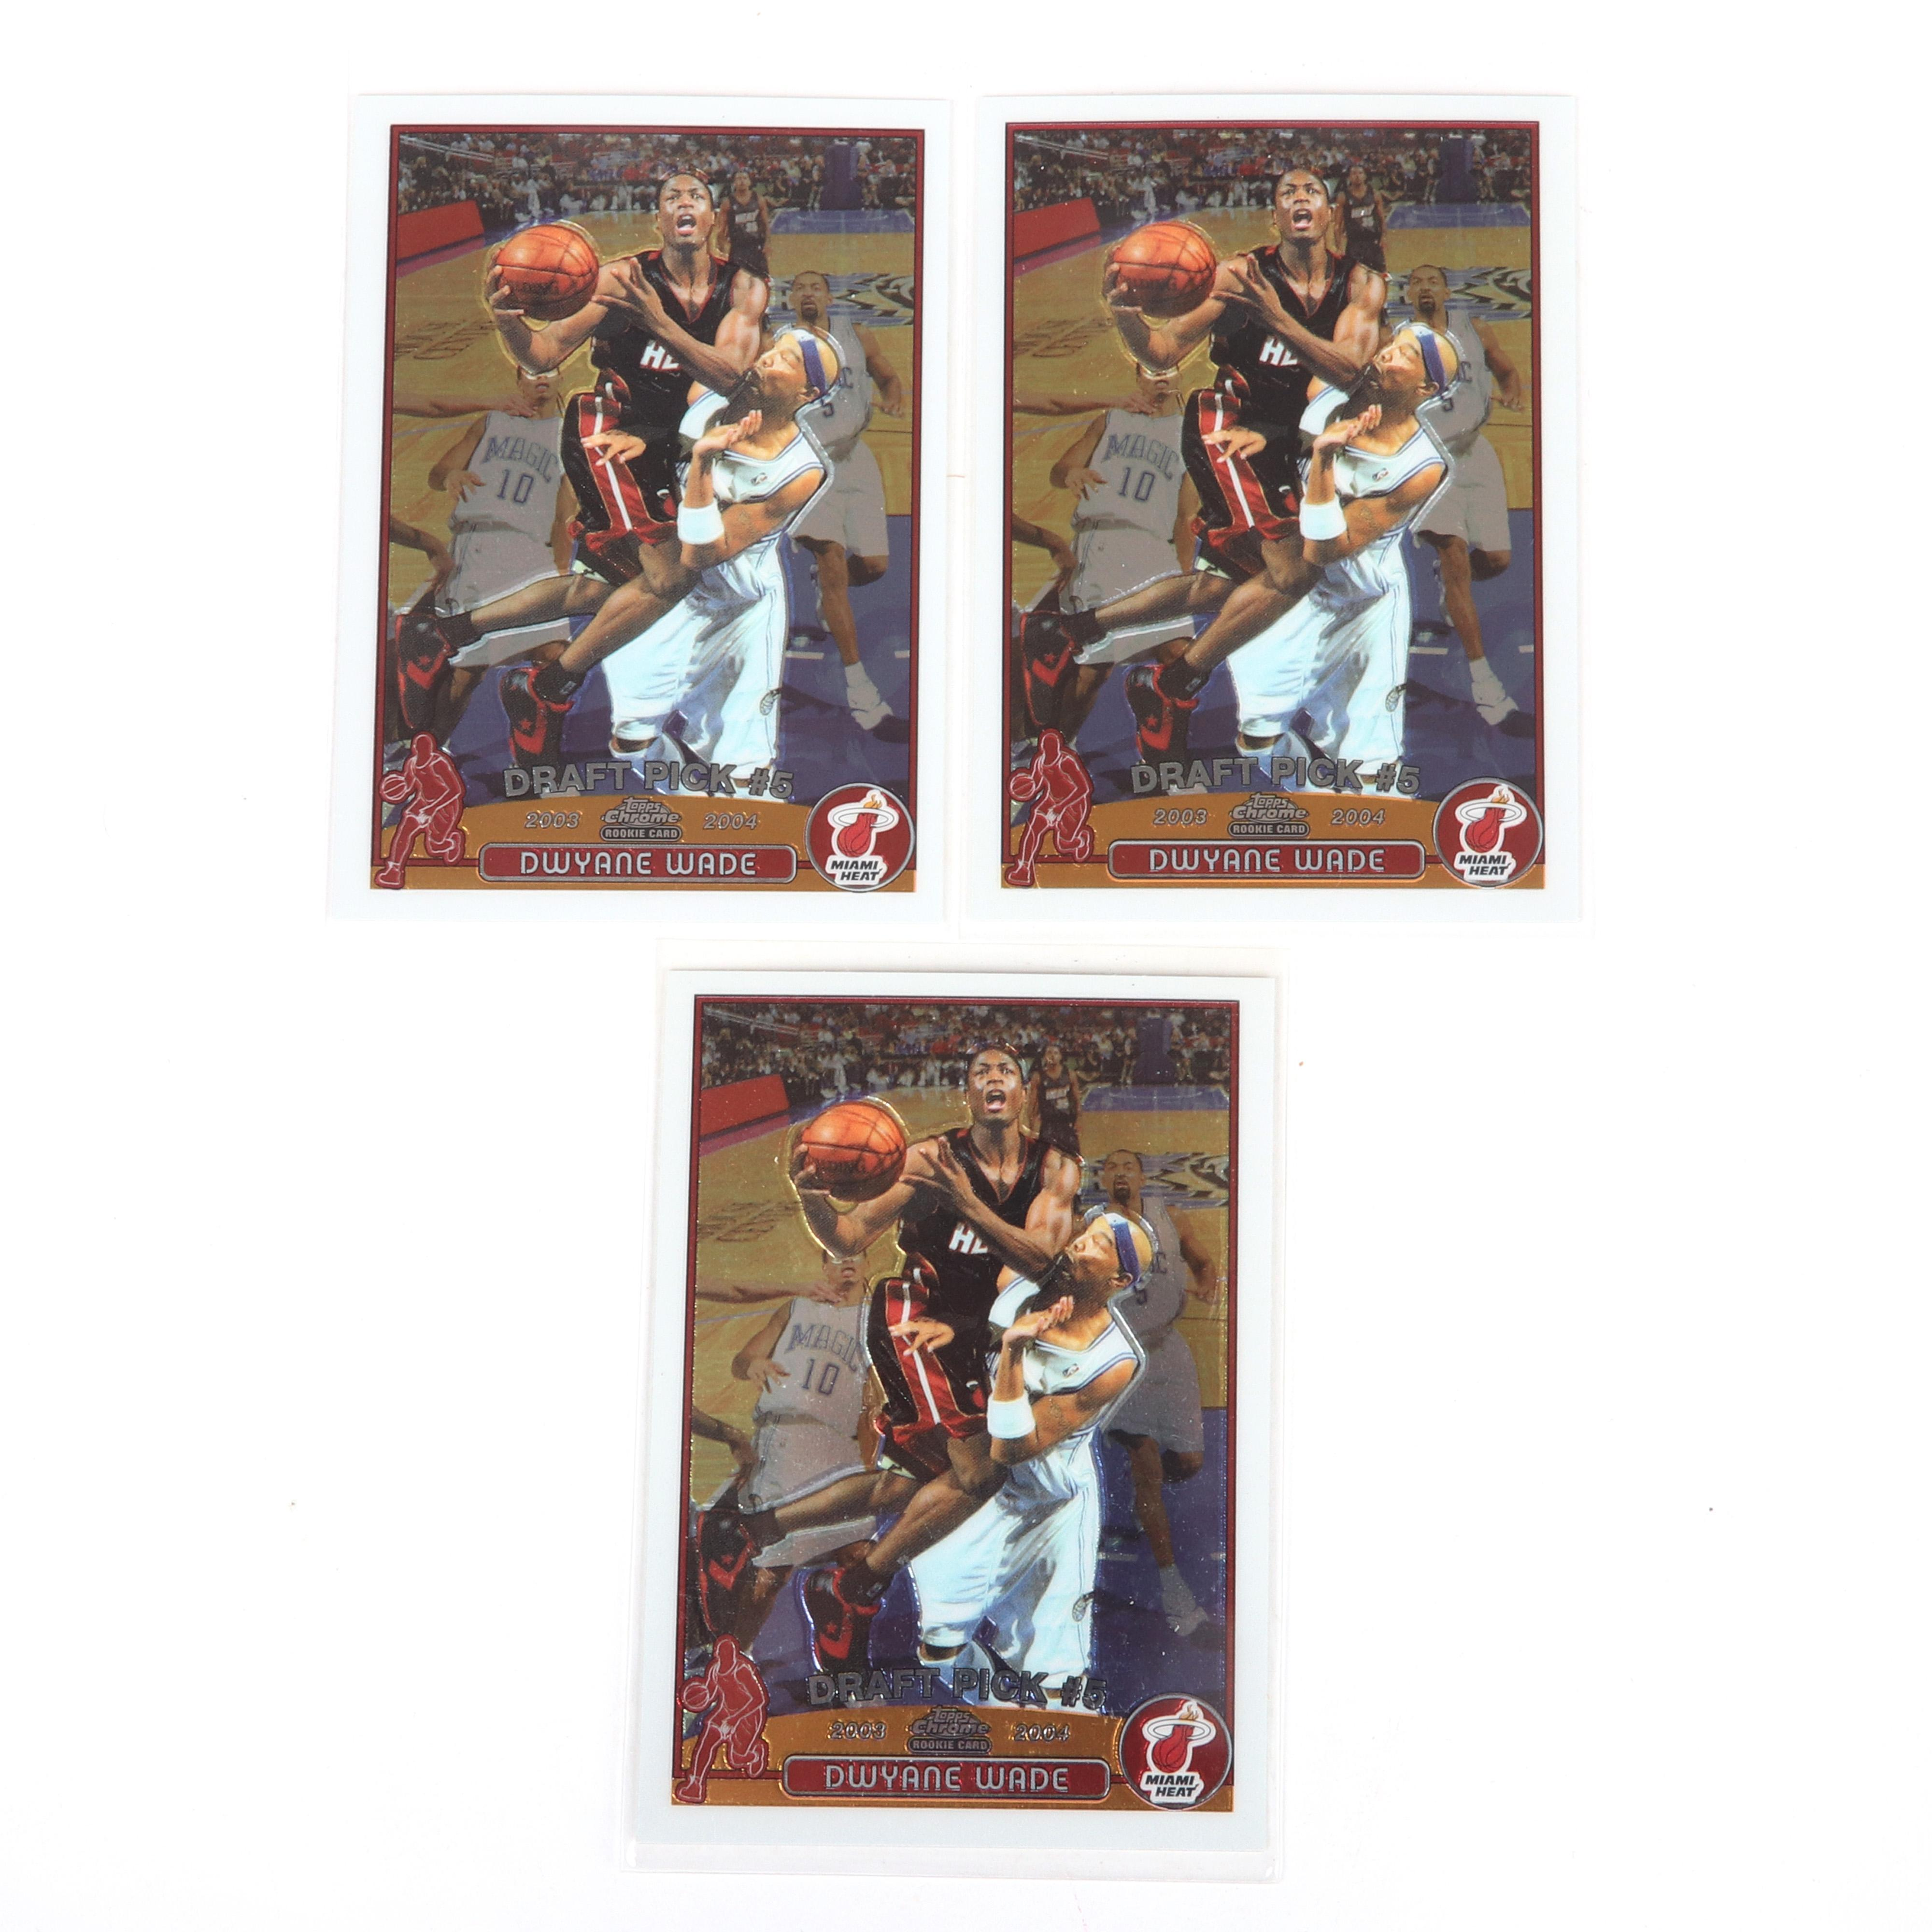 3 Dwyane Wade 2003-04 Topps Chrome Rookie Cards #115